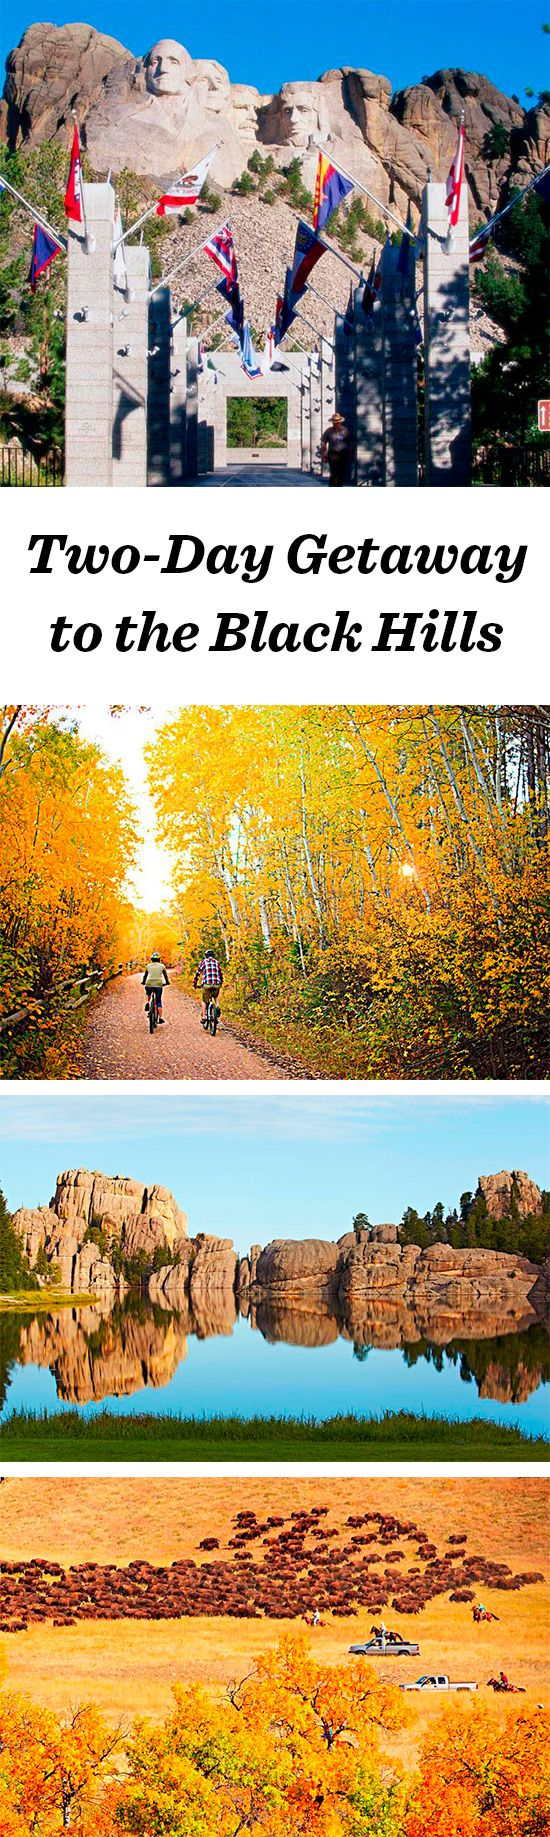 Two different itineraries for a weekend getaway in South Dakota's beautiful Black Hills: http://www.midwestliving.com/travel/south-dakota/black-hills/two-day-black-hills-getaway/ #southdakota #blackhills #custerstatepark